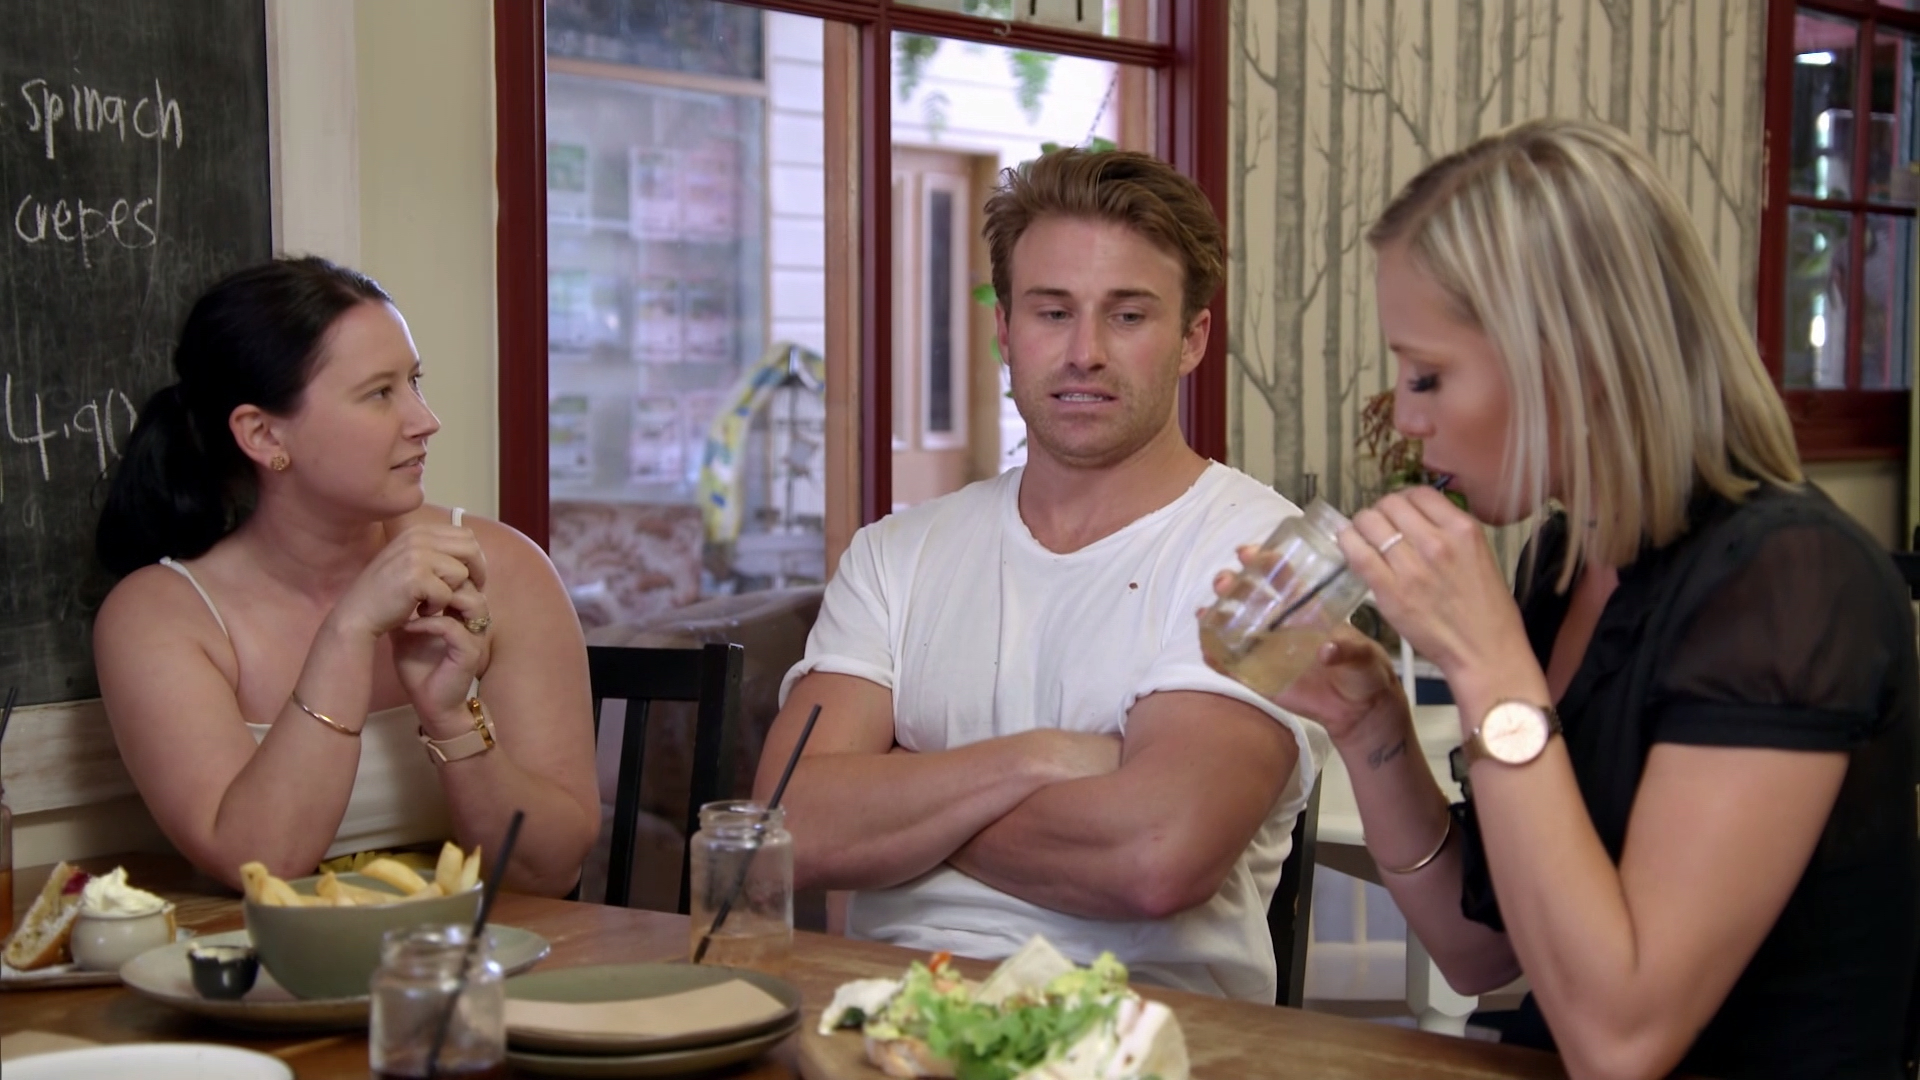 Catch up with Susie's girlfriends leads to disaster for Billy